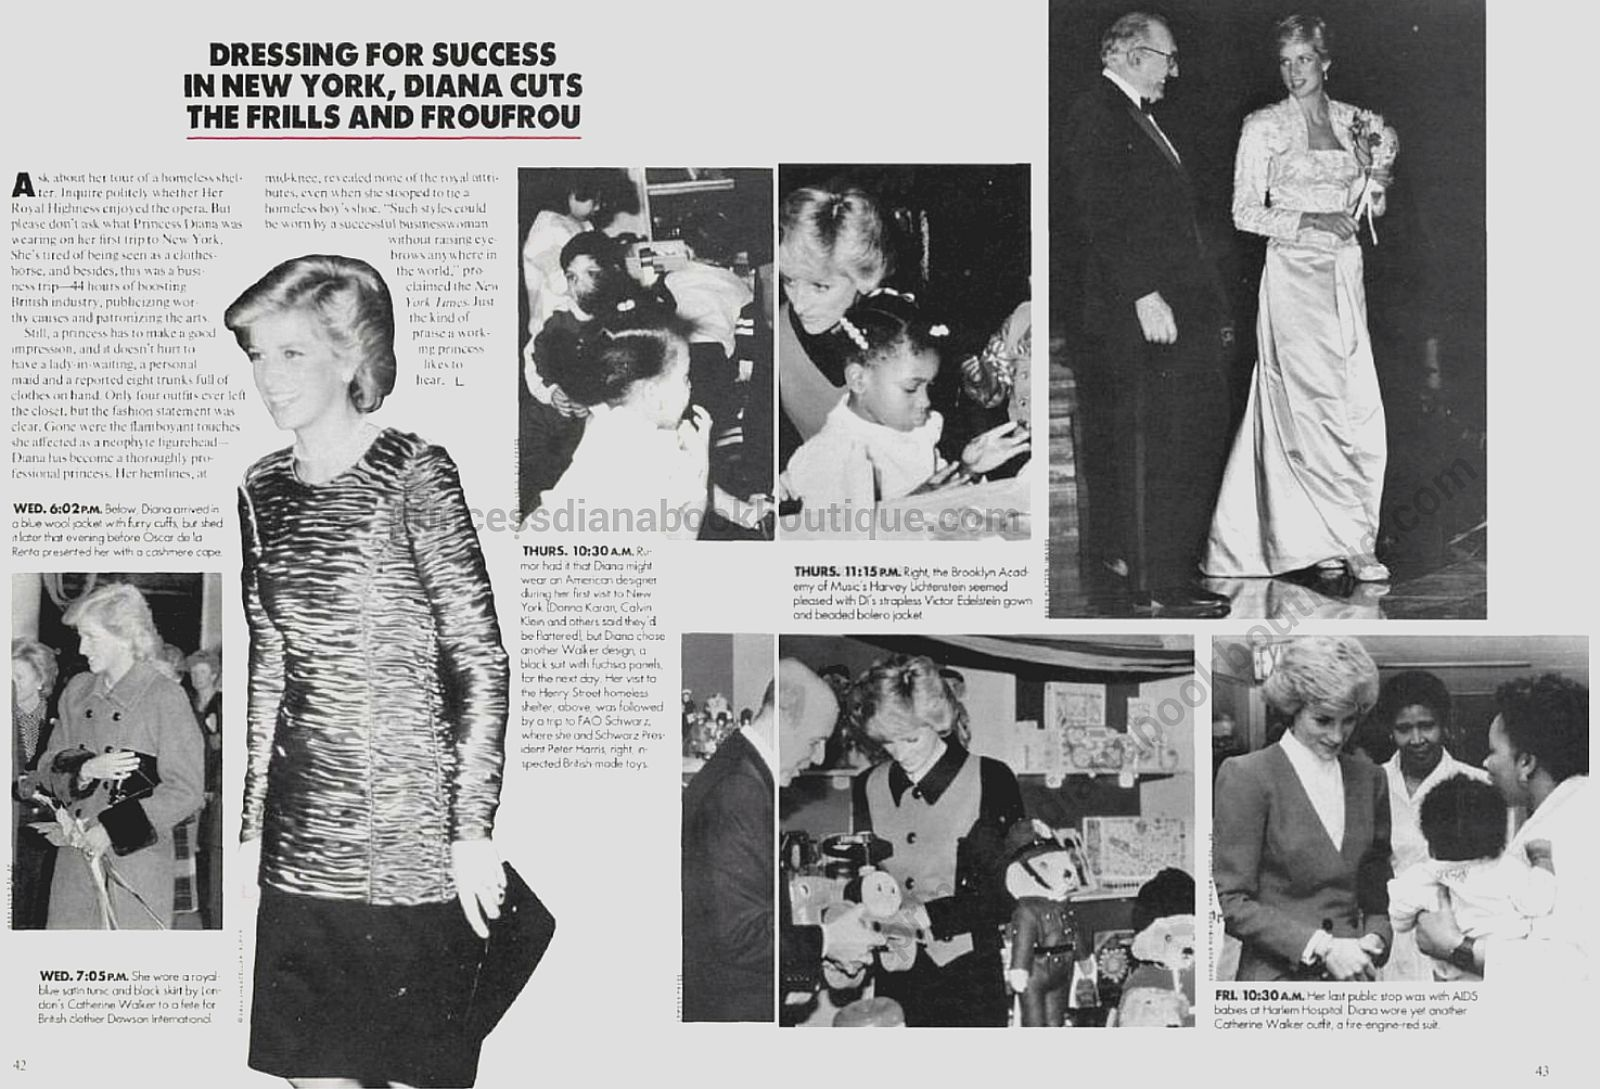 princess diana arrives in the big apple february 1 1989 for her first solo 3 day visit to new york city princess diana news blog all things princess diana princess diana arrives in the big apple